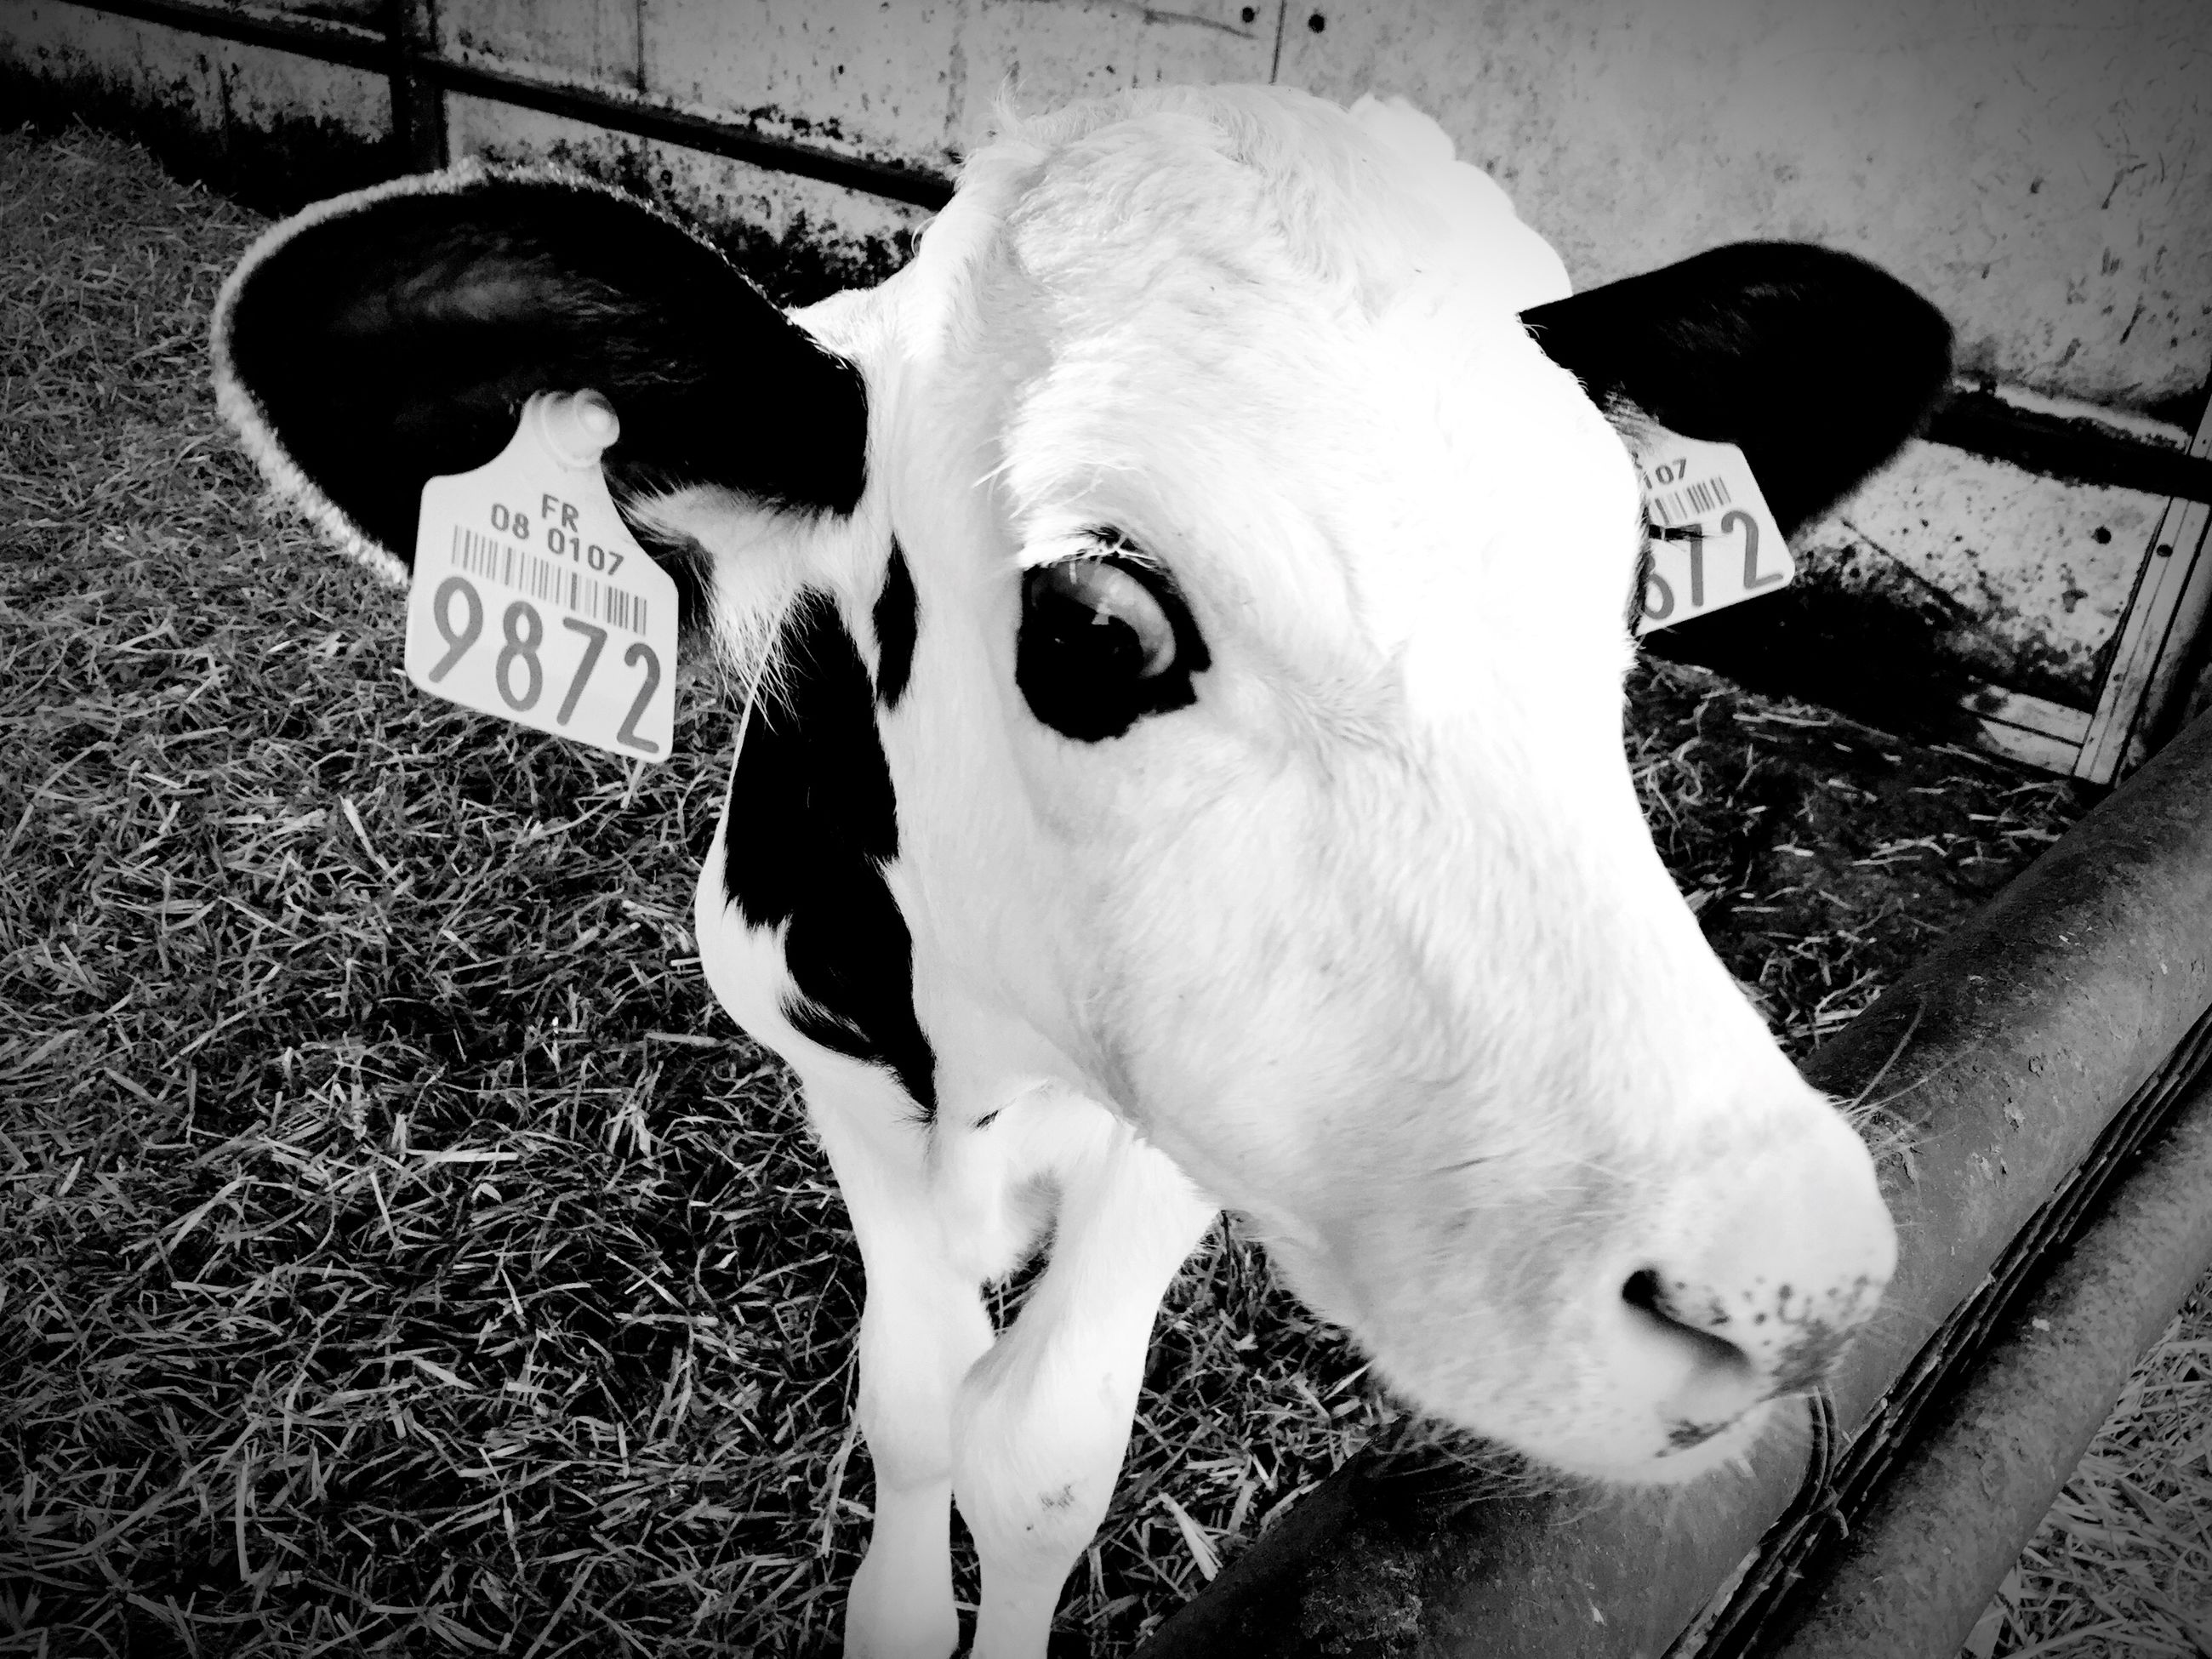 domestic animals, animal themes, one animal, high angle view, pets, mammal, white color, dog, grass, field, day, no people, outdoors, shadow, metal, close-up, standing, sunlight, livestock, two animals